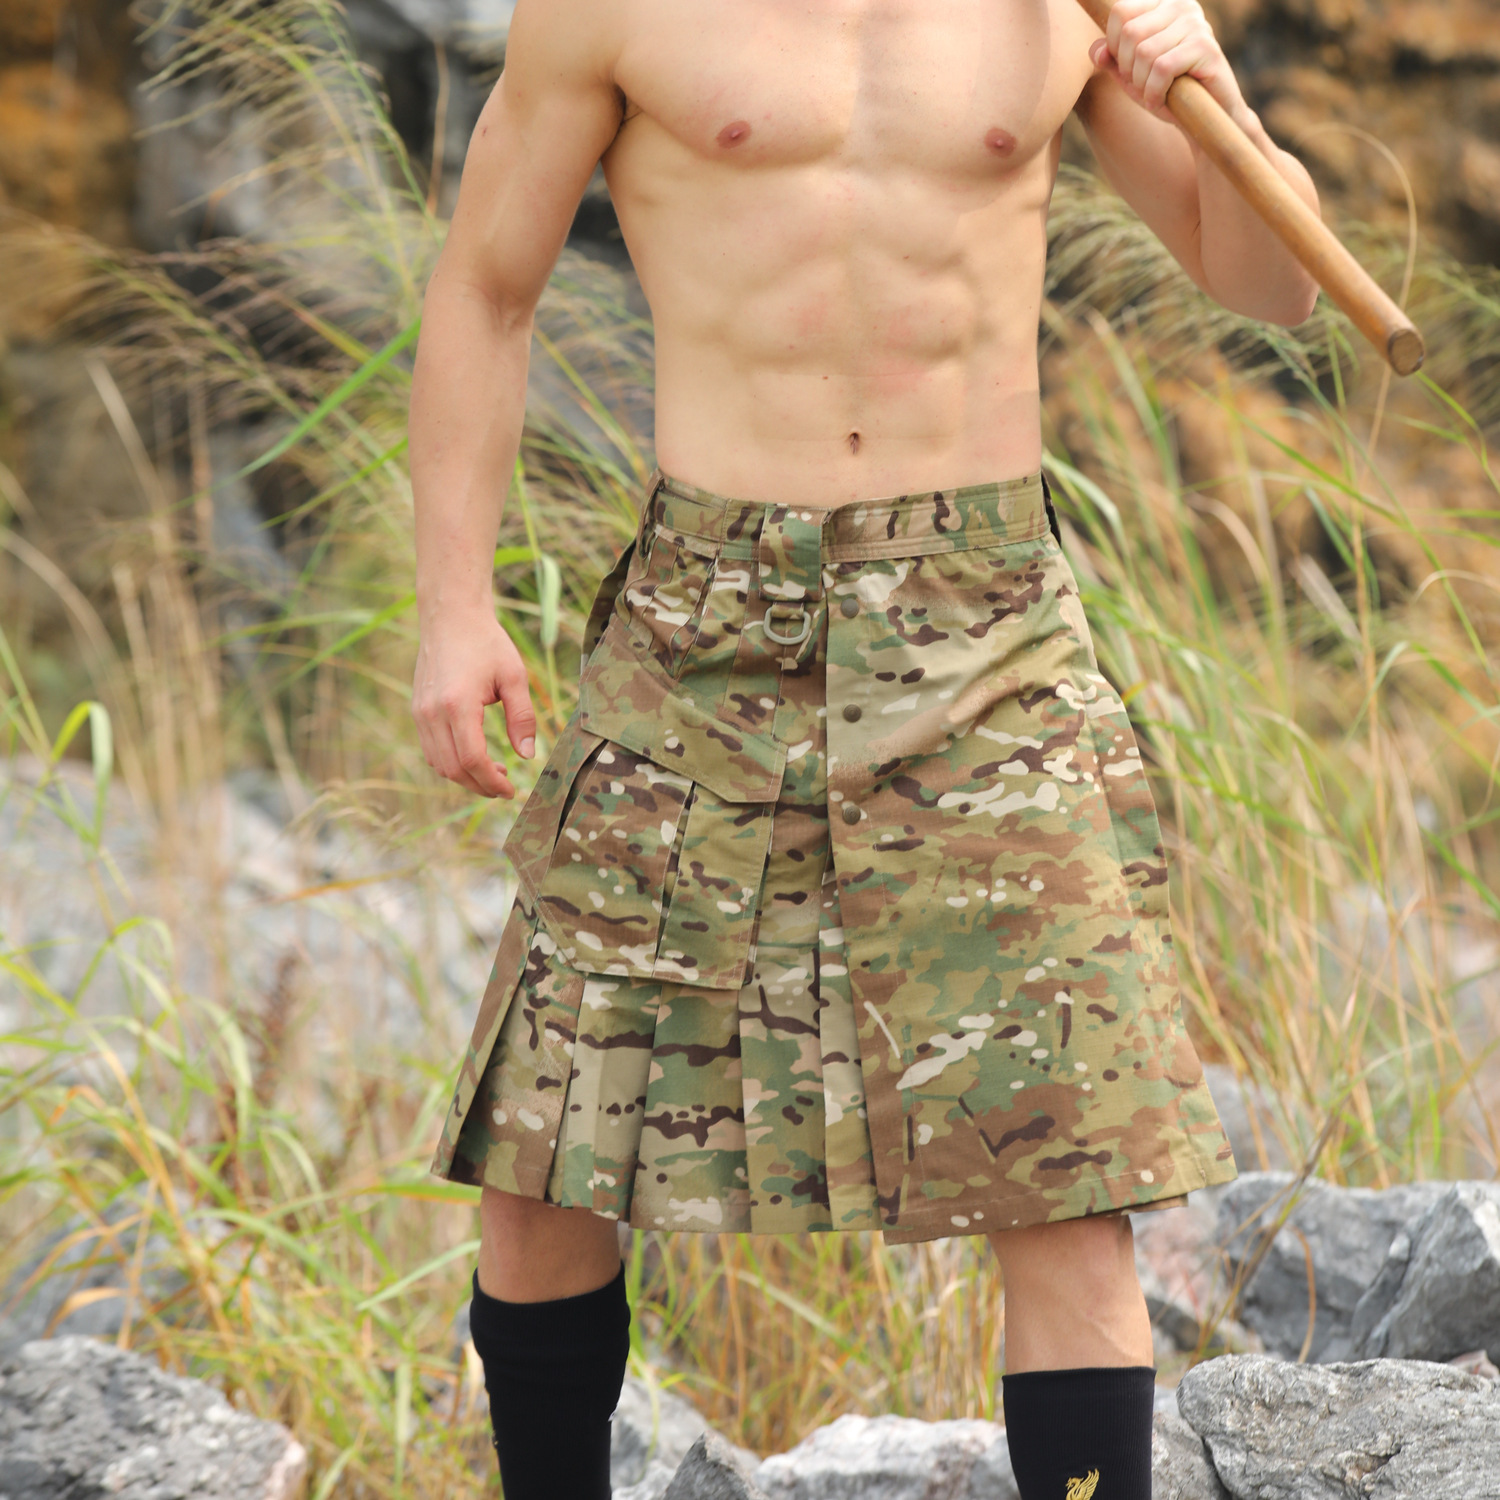 Plaid Cloth Camo Tactical Shorts Skirt Men Women Outdoor Training Climbing Hunting Camping Loose Wearproof Army